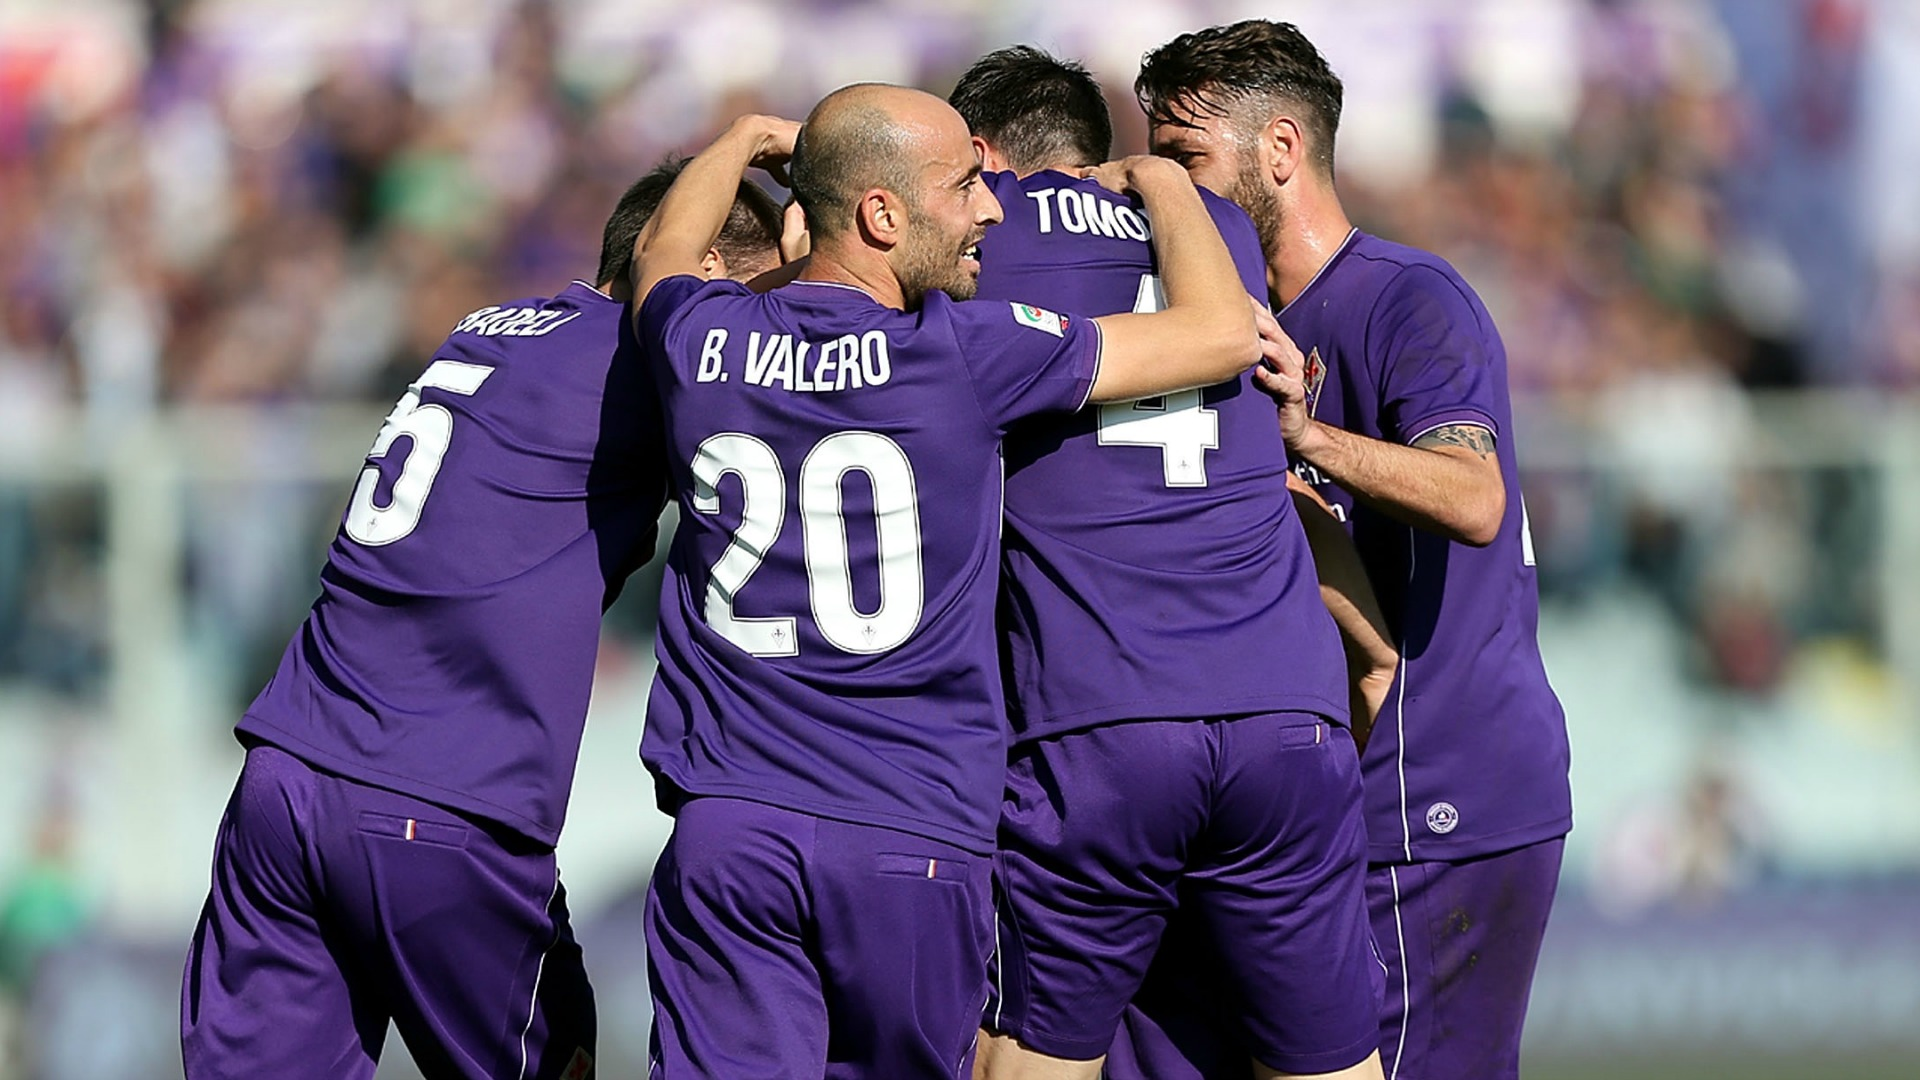 Video: Fiorentina vs Frosinone